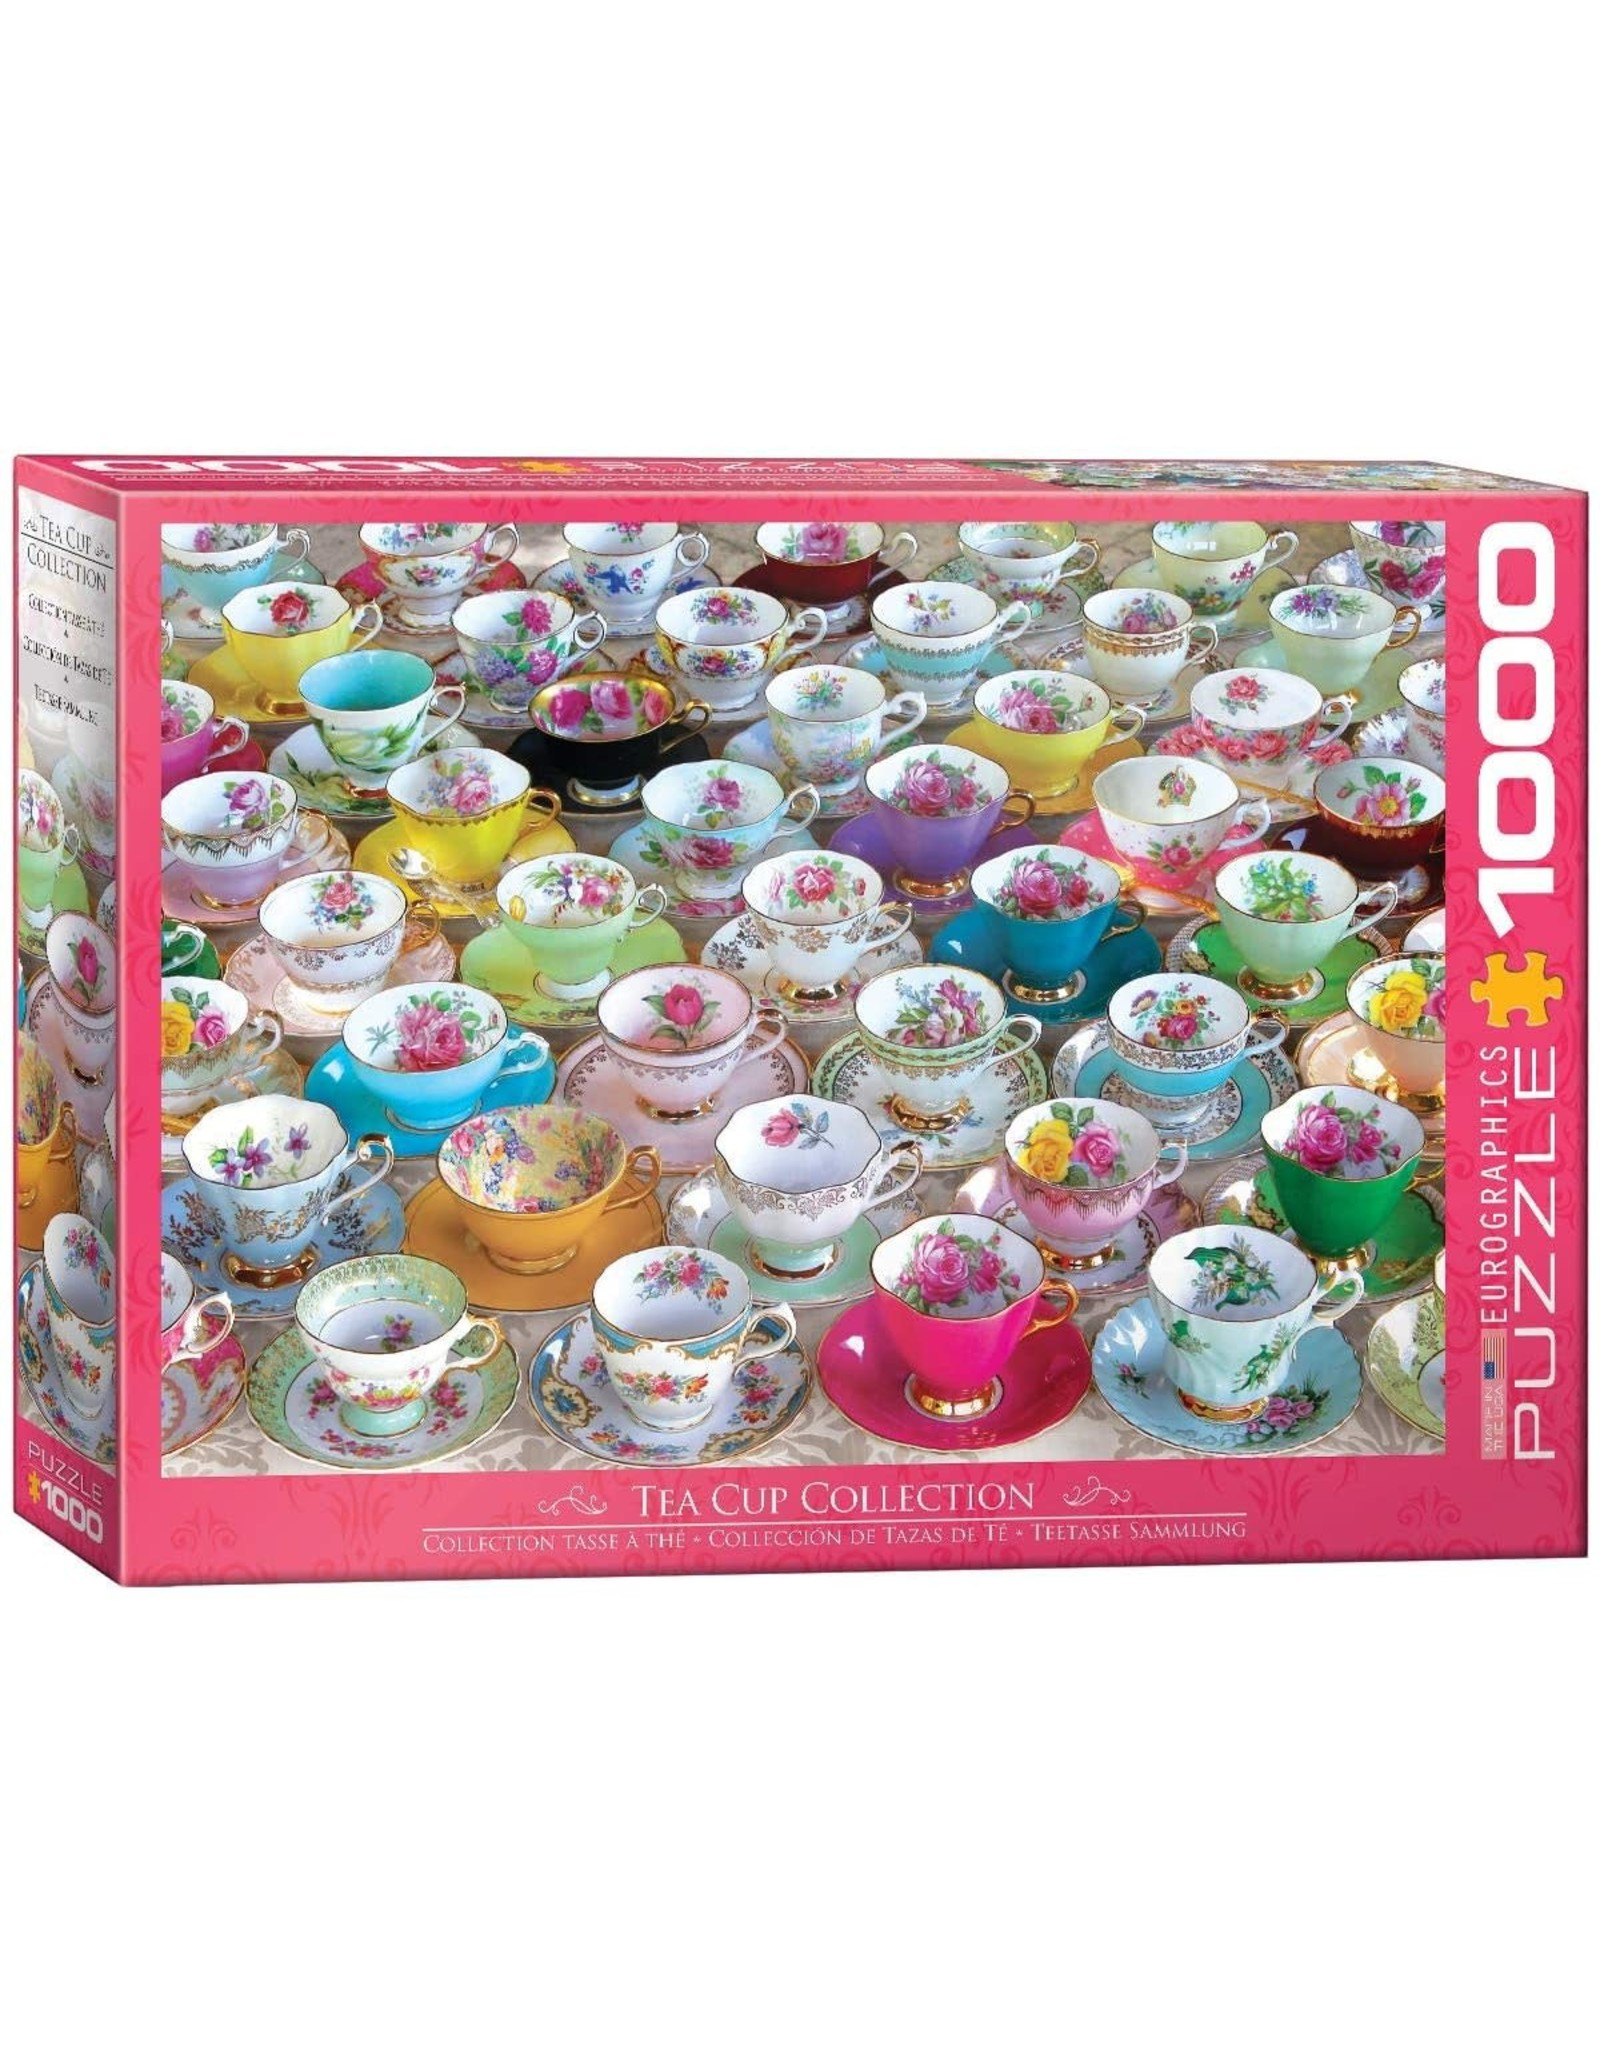 TEA CUP COLLECTION 1000 PIECE PUZZLE